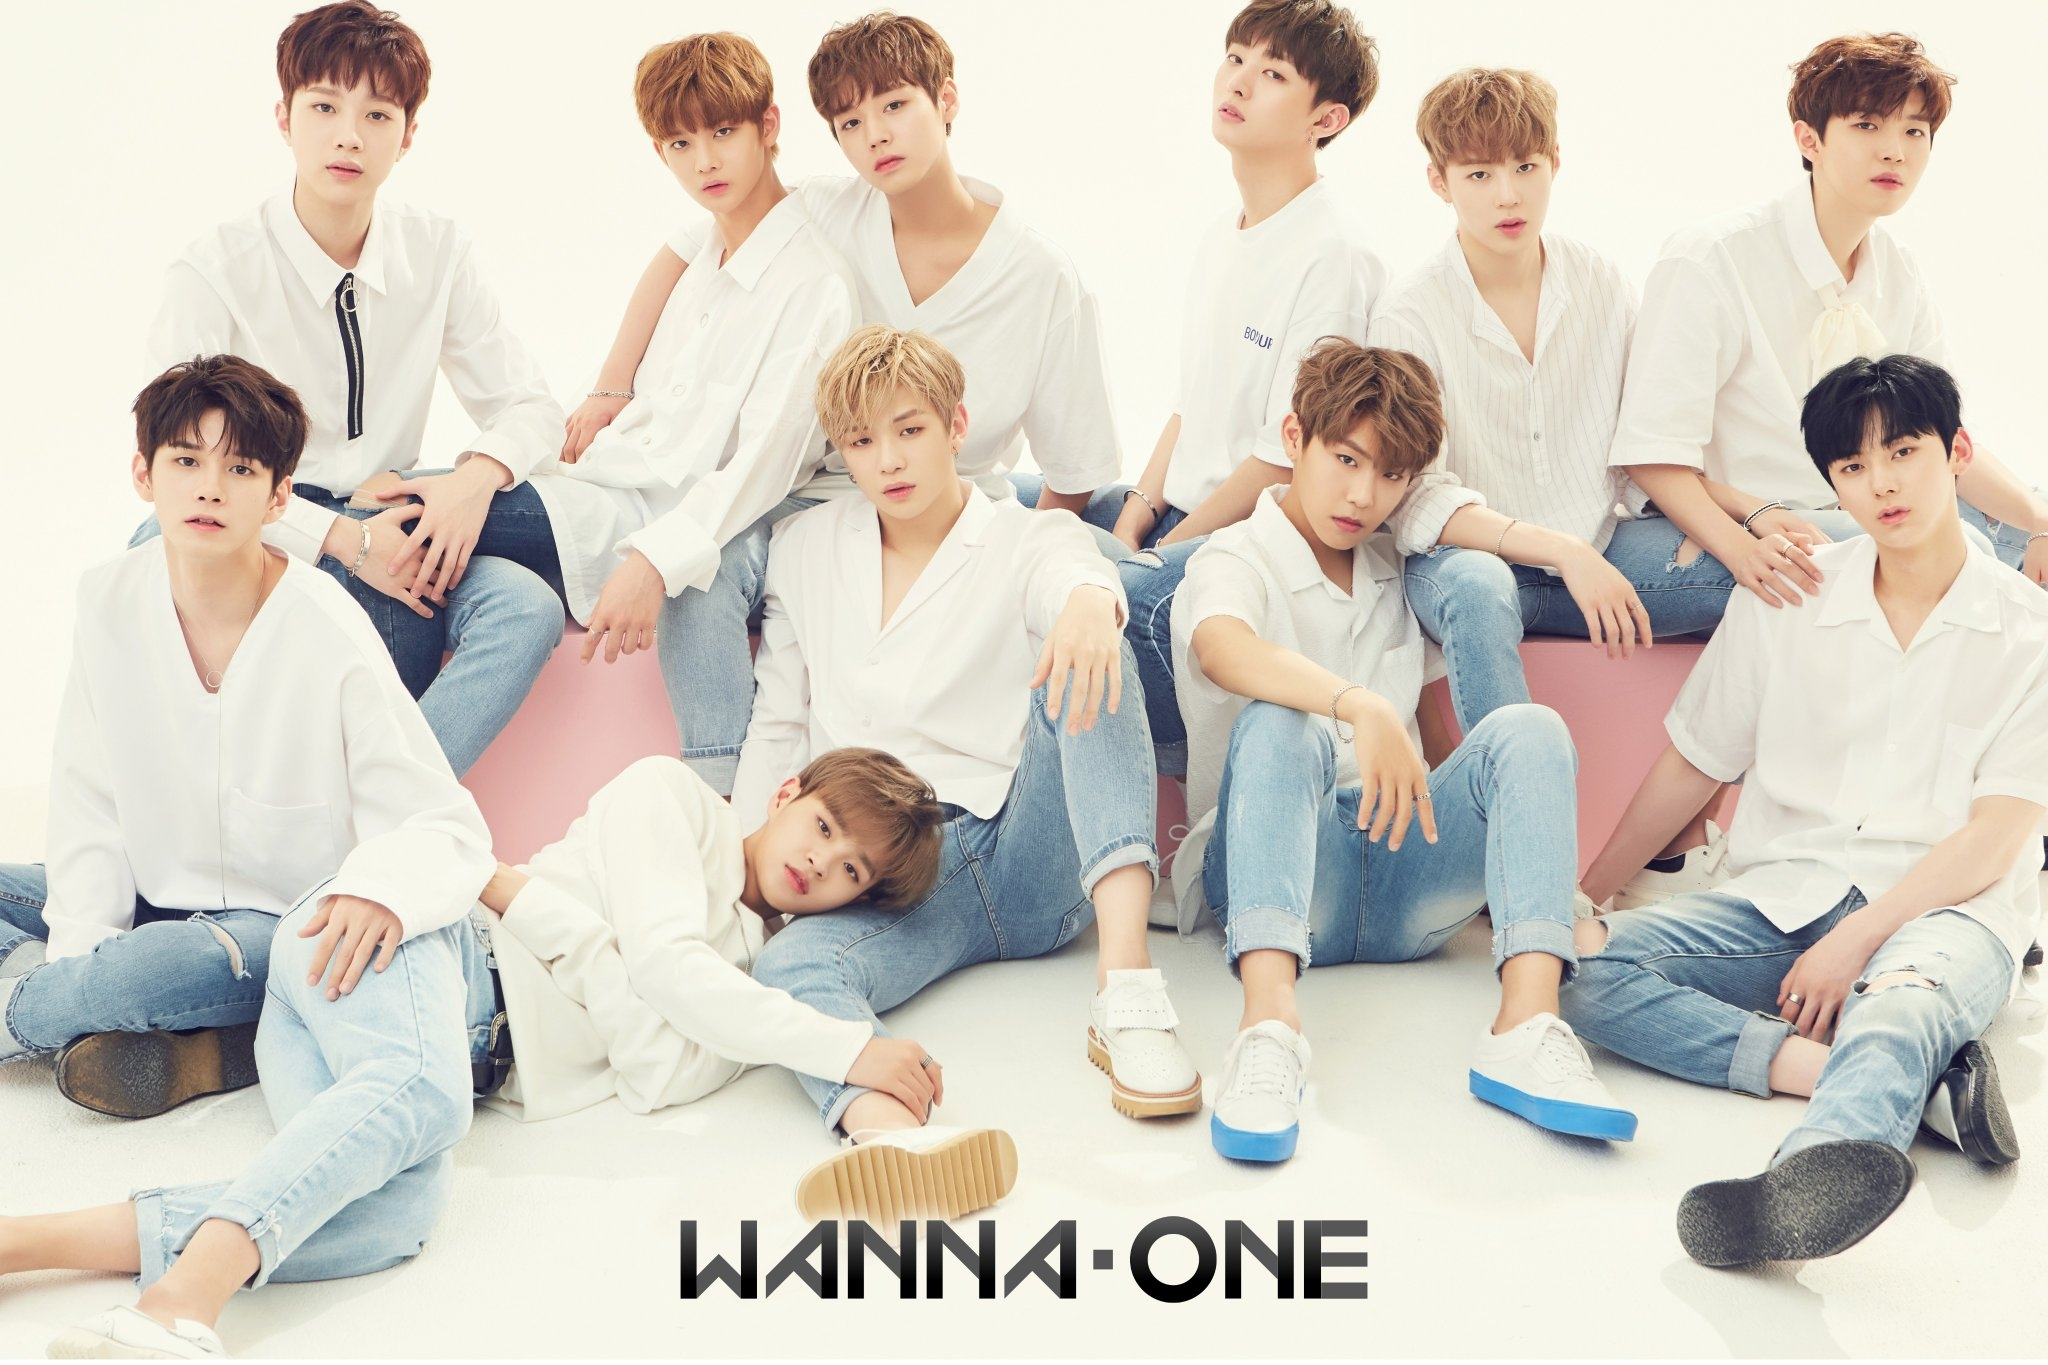 bestie wanna one 1